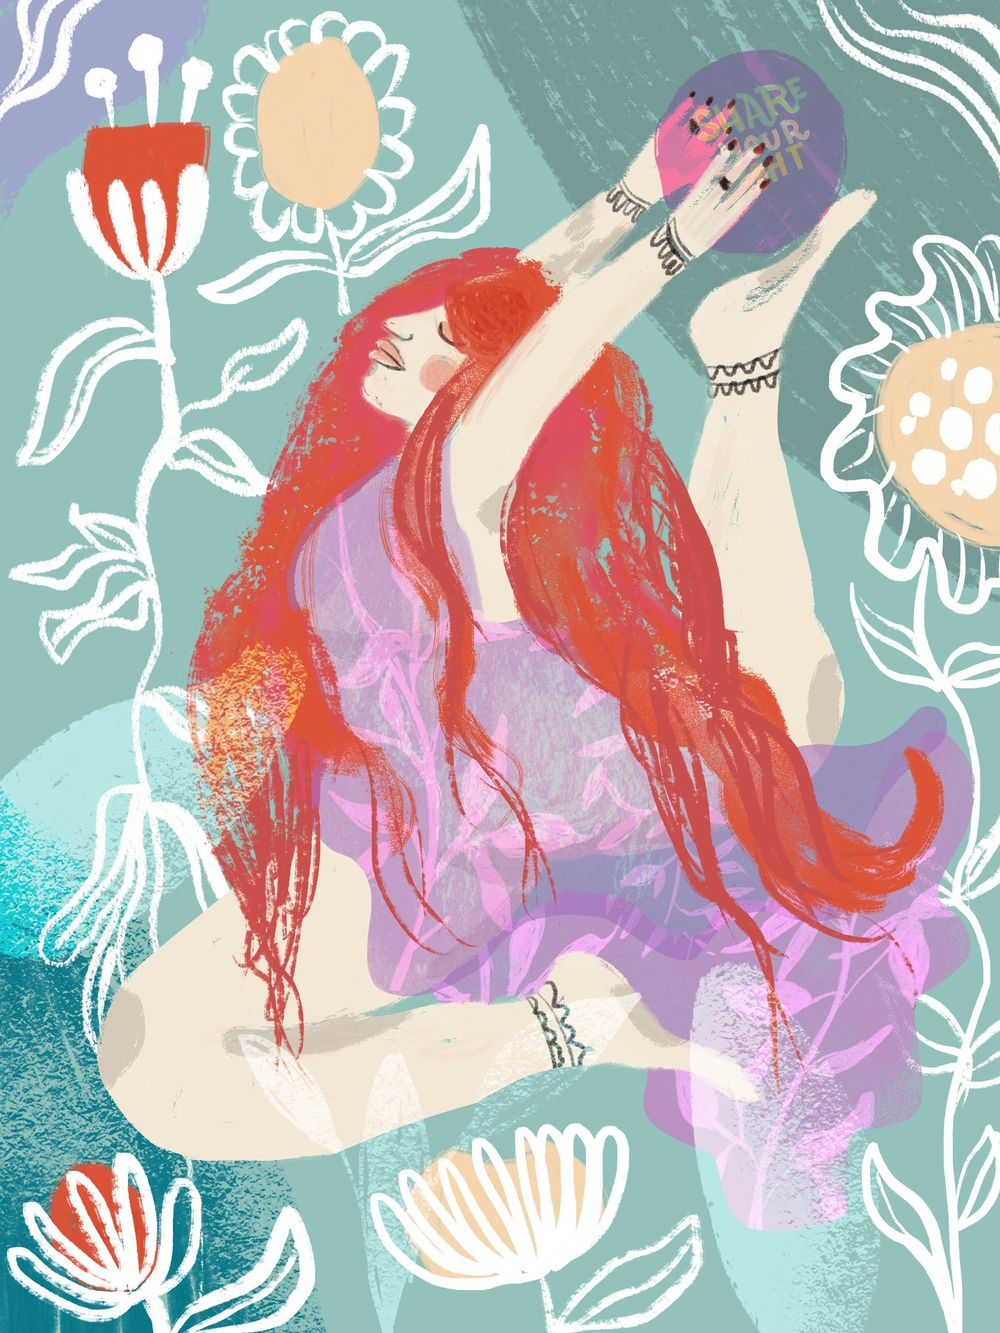 Underwater dreamer - image 1 - student project